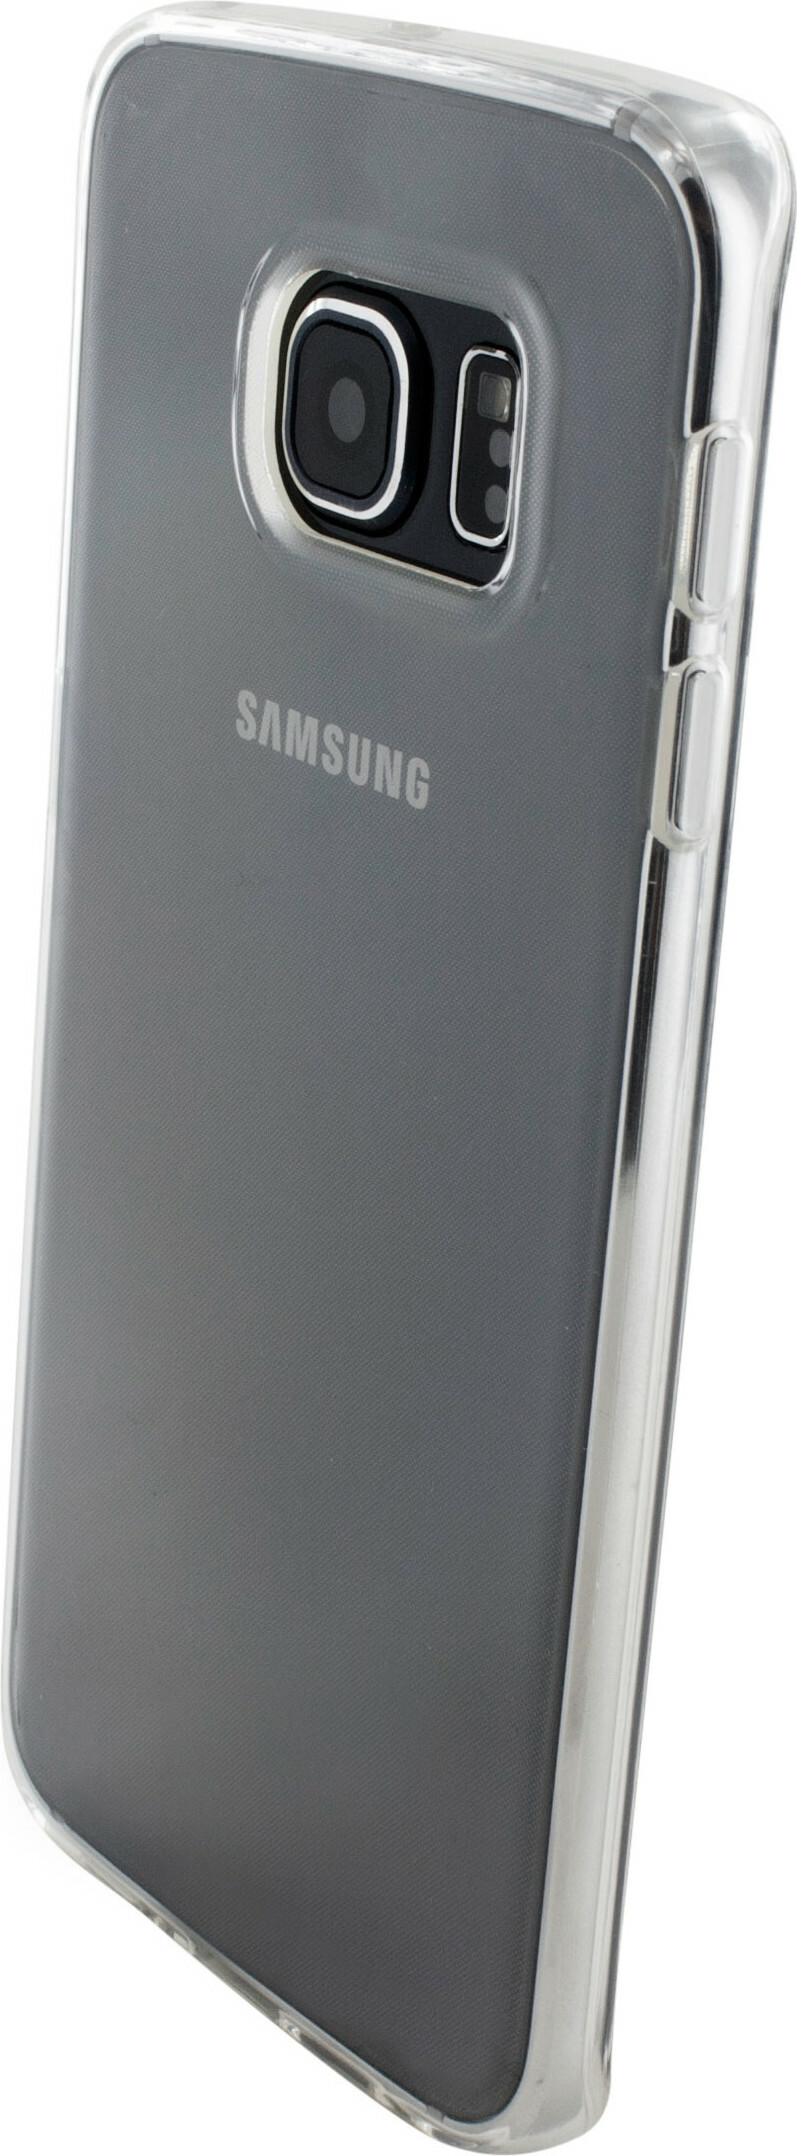 Mobiparts Classic TPU Case Samsung Galaxy S6 Edge Transparent